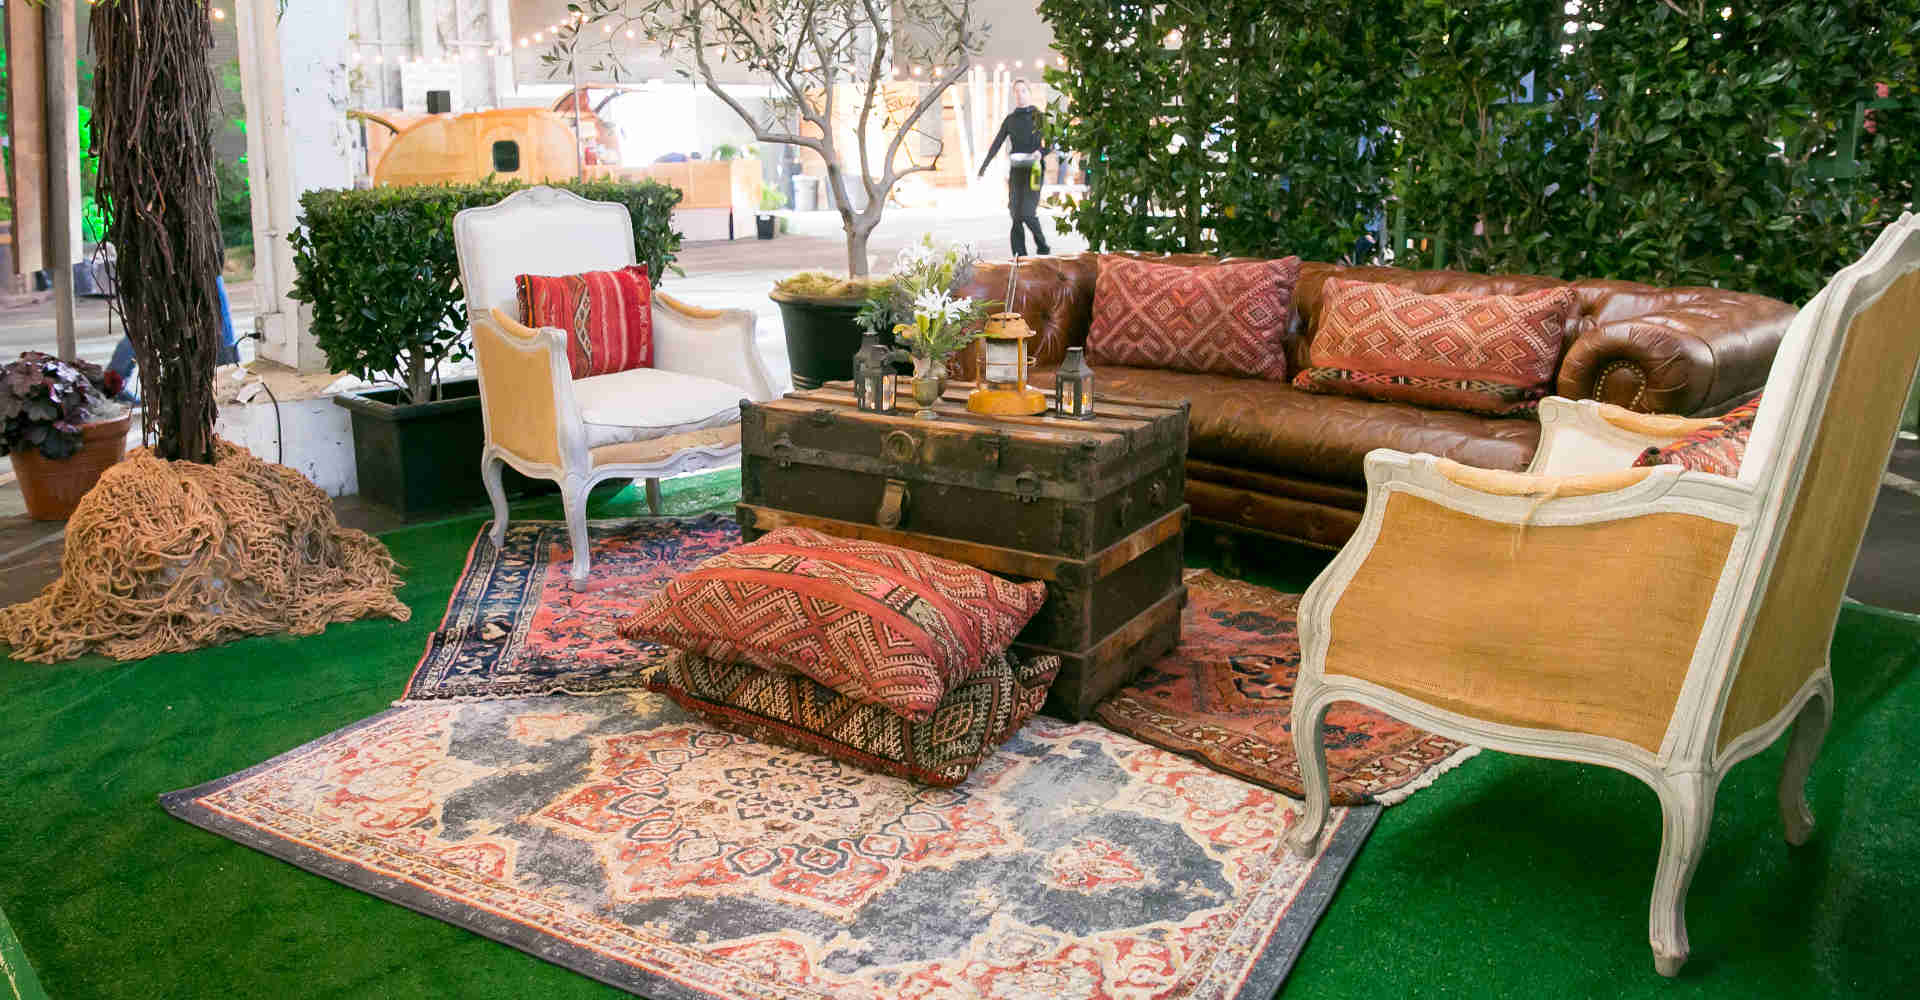 Vintage furniture rentals in San Francisco Bay Area